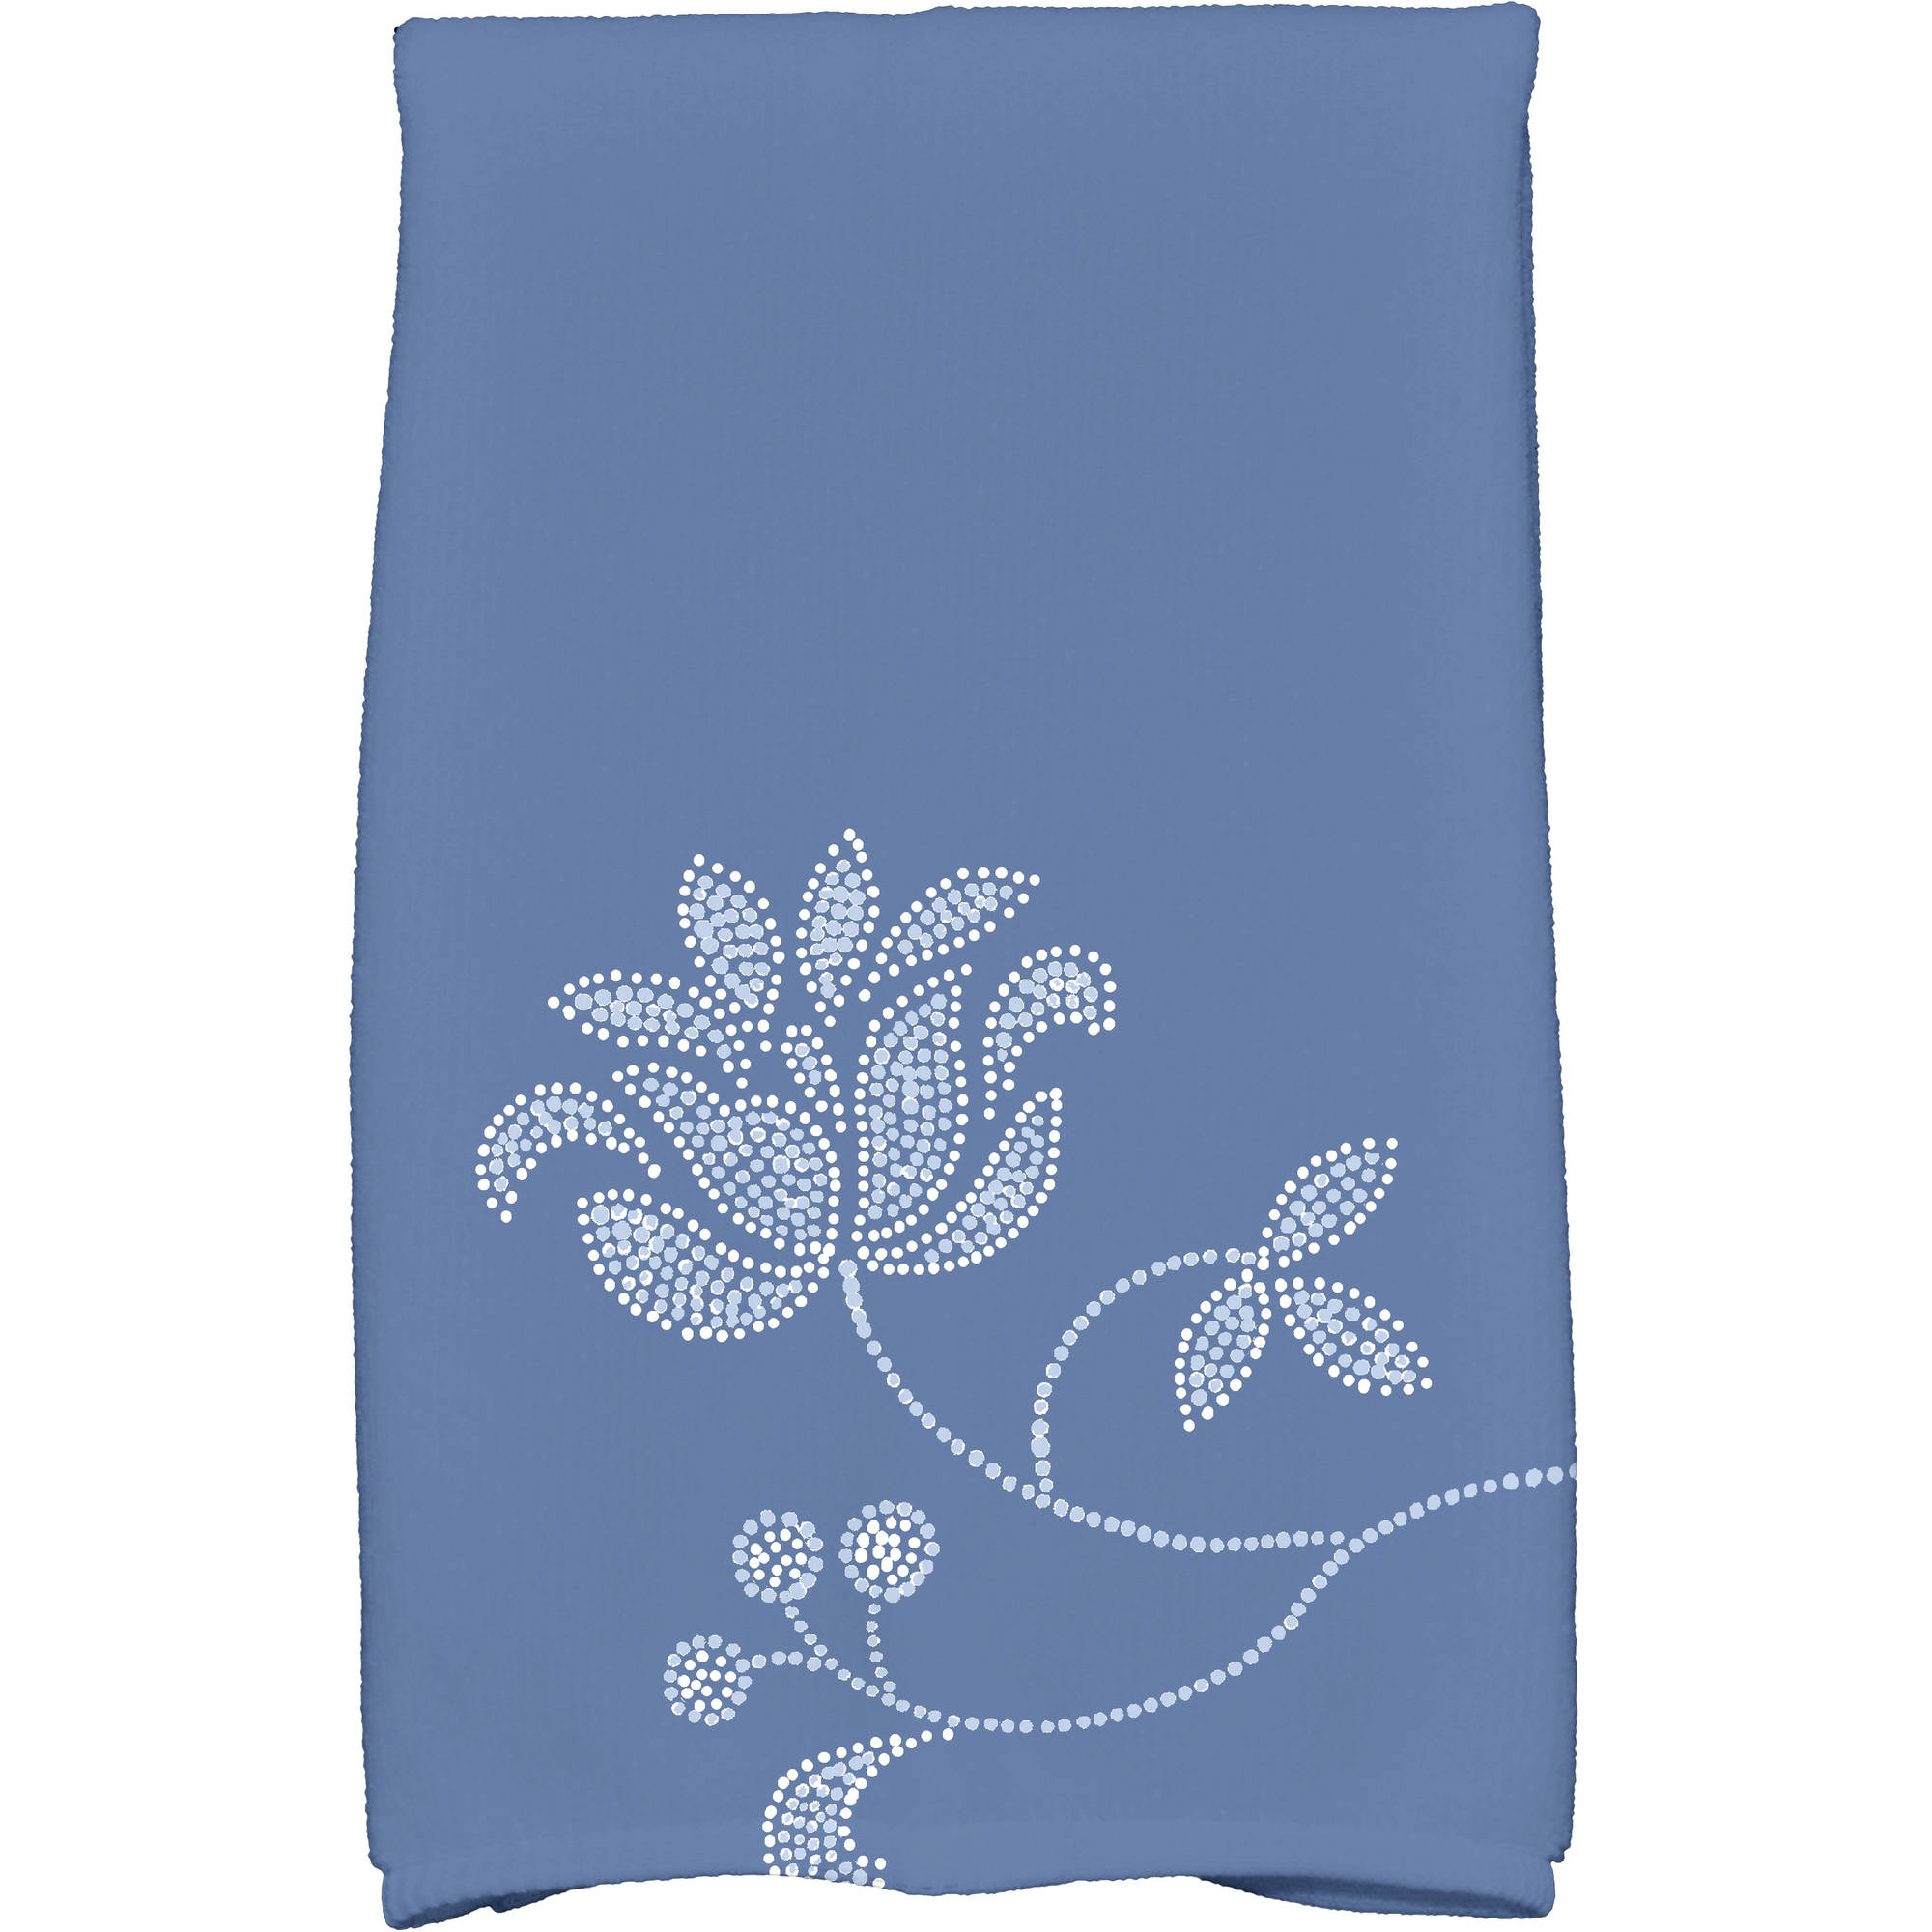 "Simply Daisy 16"" x 25"" Traditional Flower Single Bloom Floral Print Kitchen Towel"